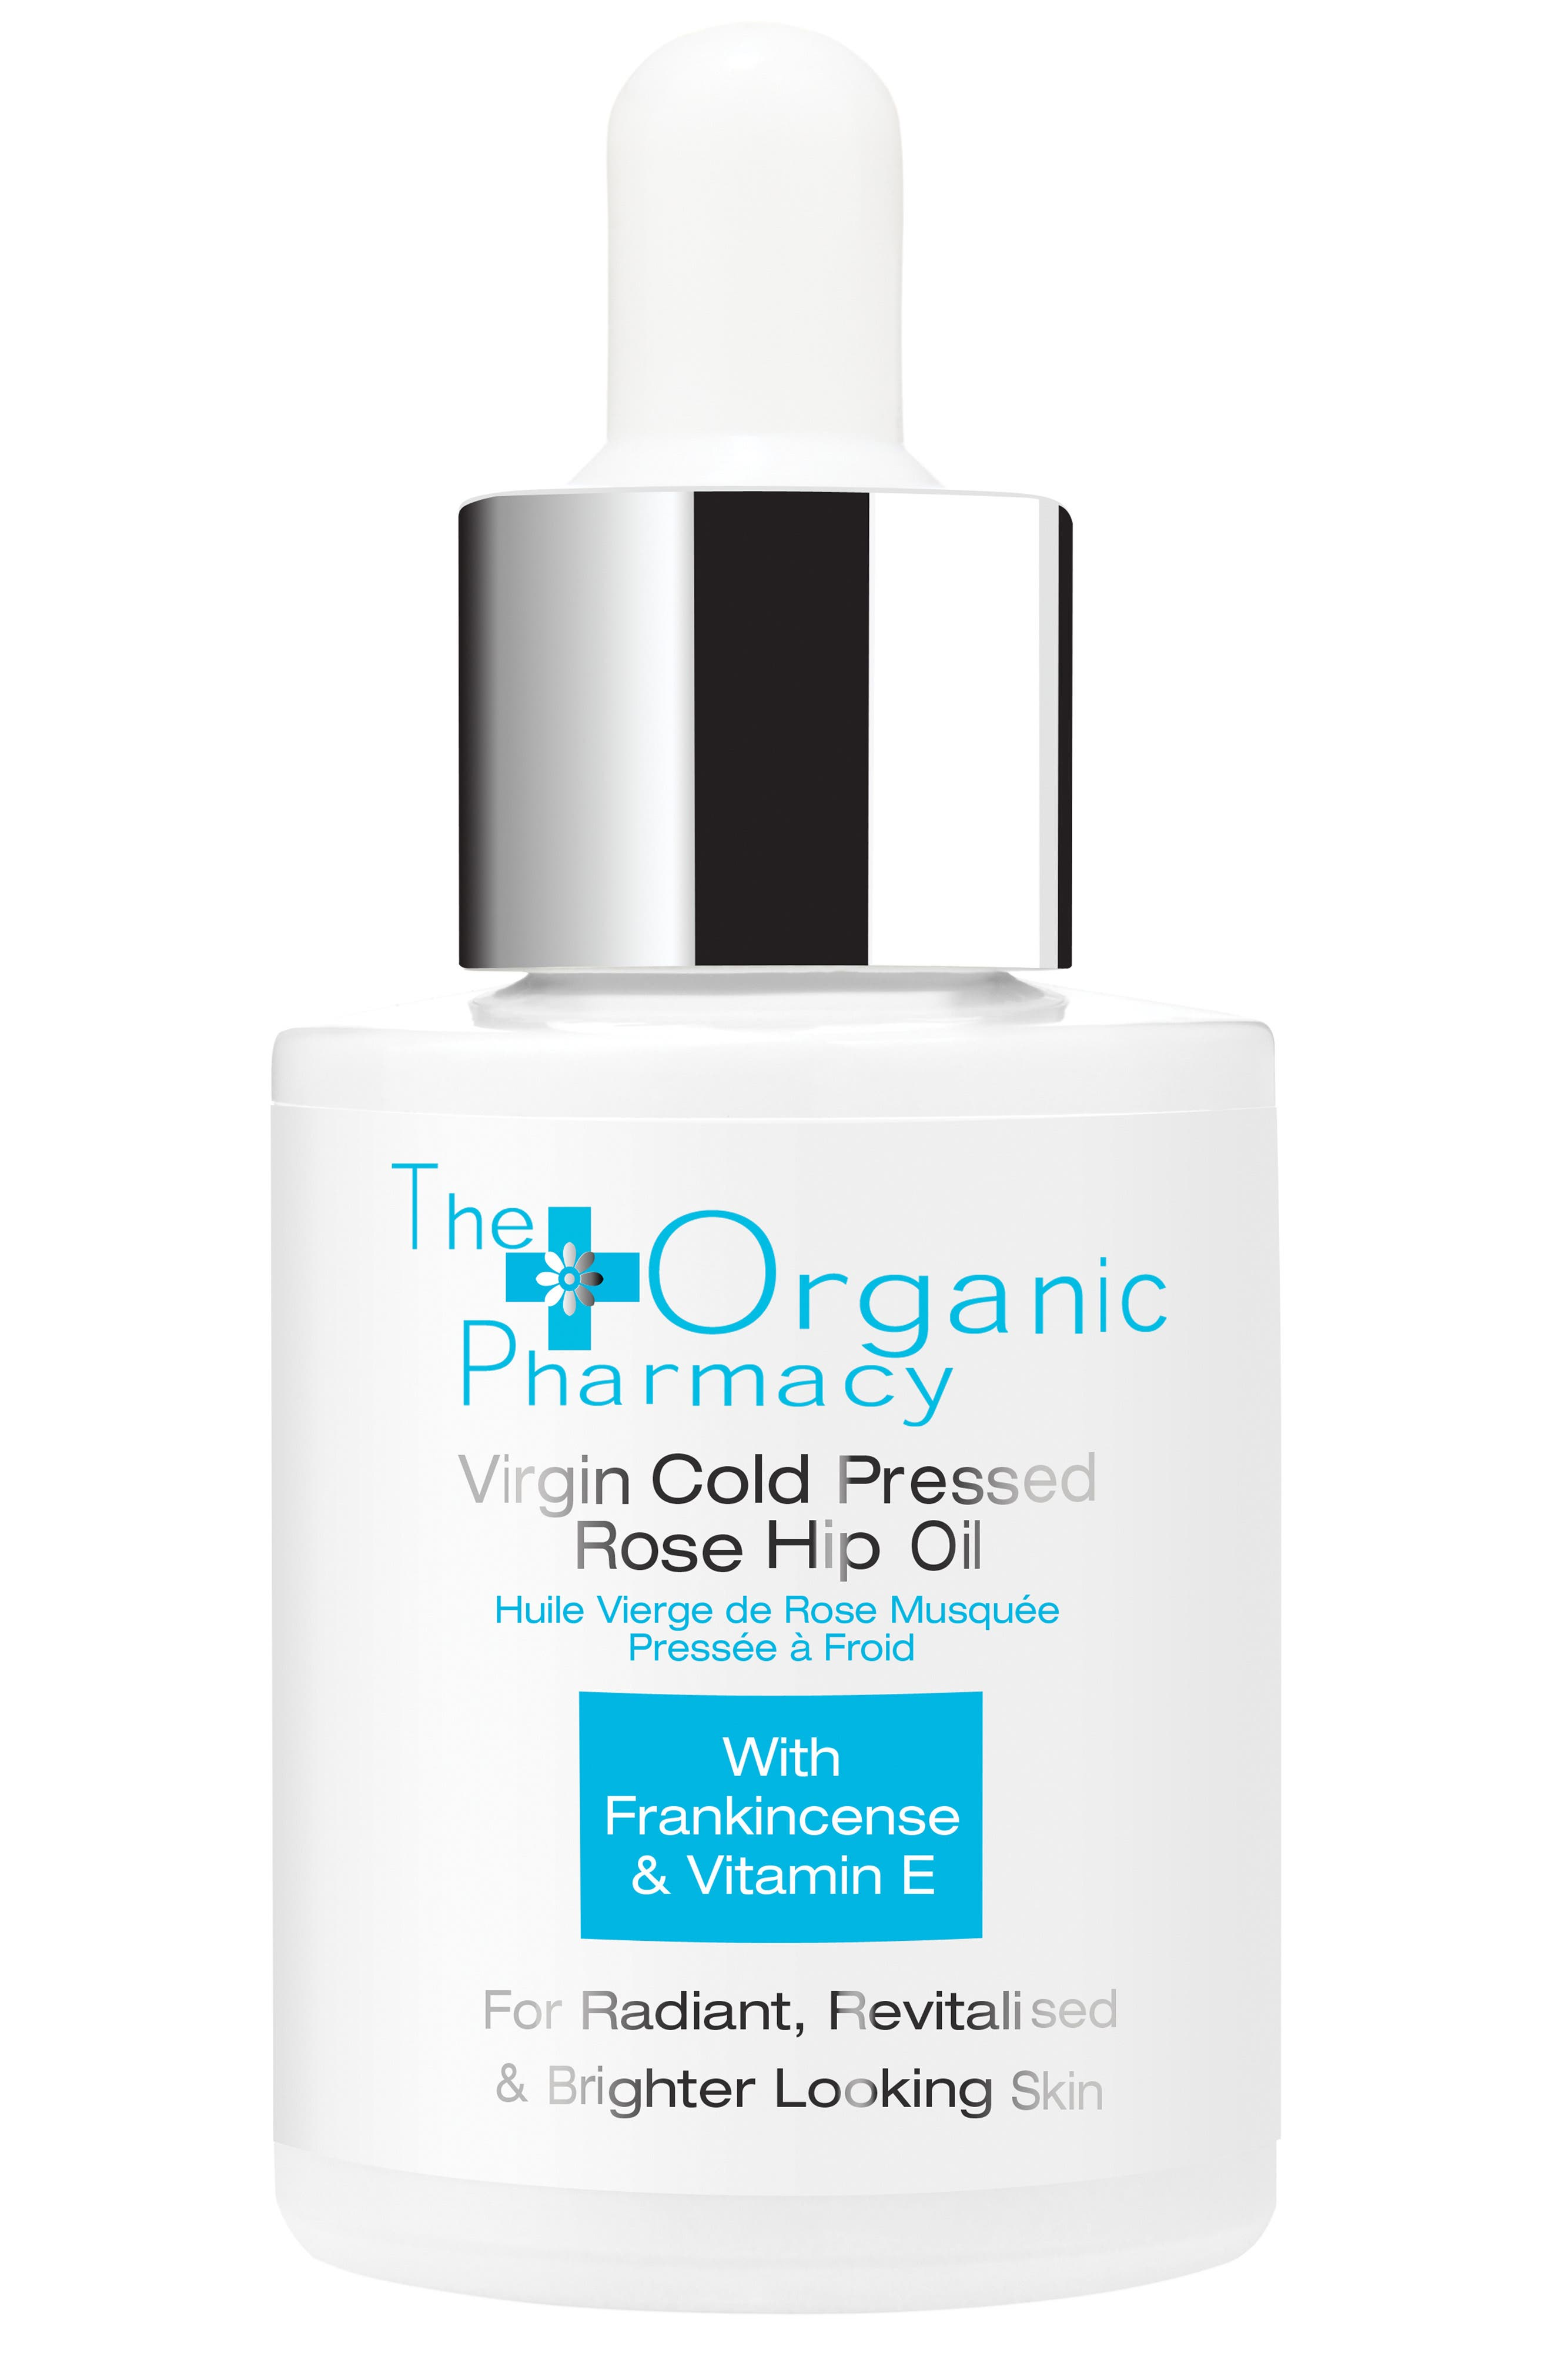 The Organic Pharmacy Virgin Cold Pressed Rose Hip Oil